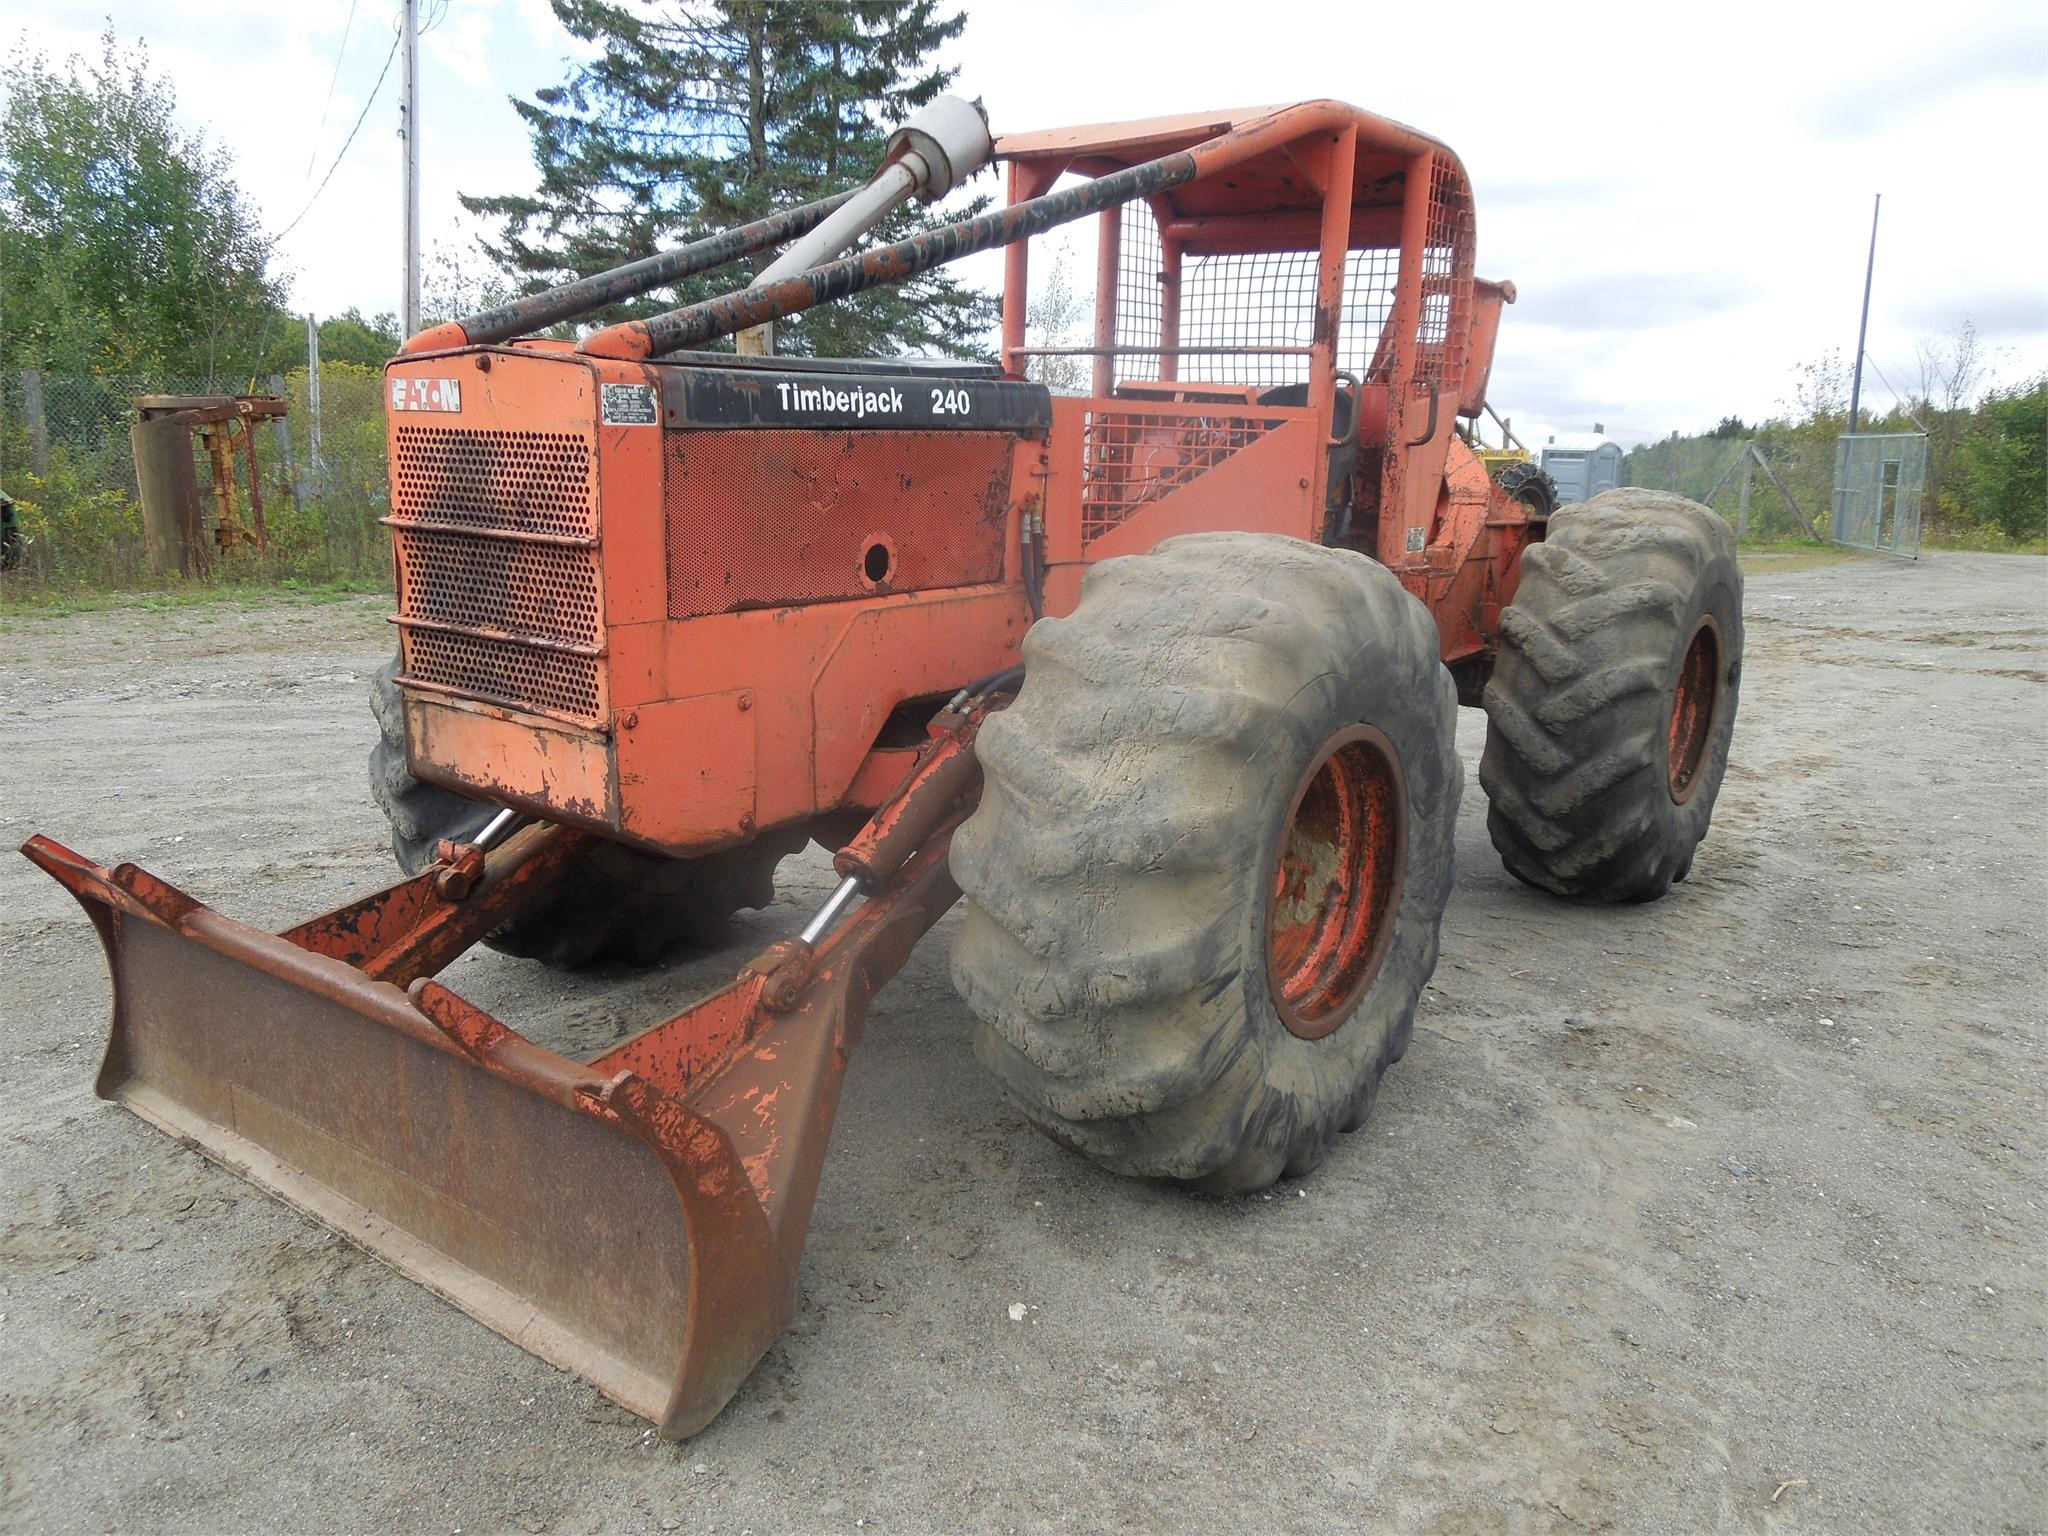 1980 TIMBERJACK 240 For Sale in Colebrook, New Hampshire